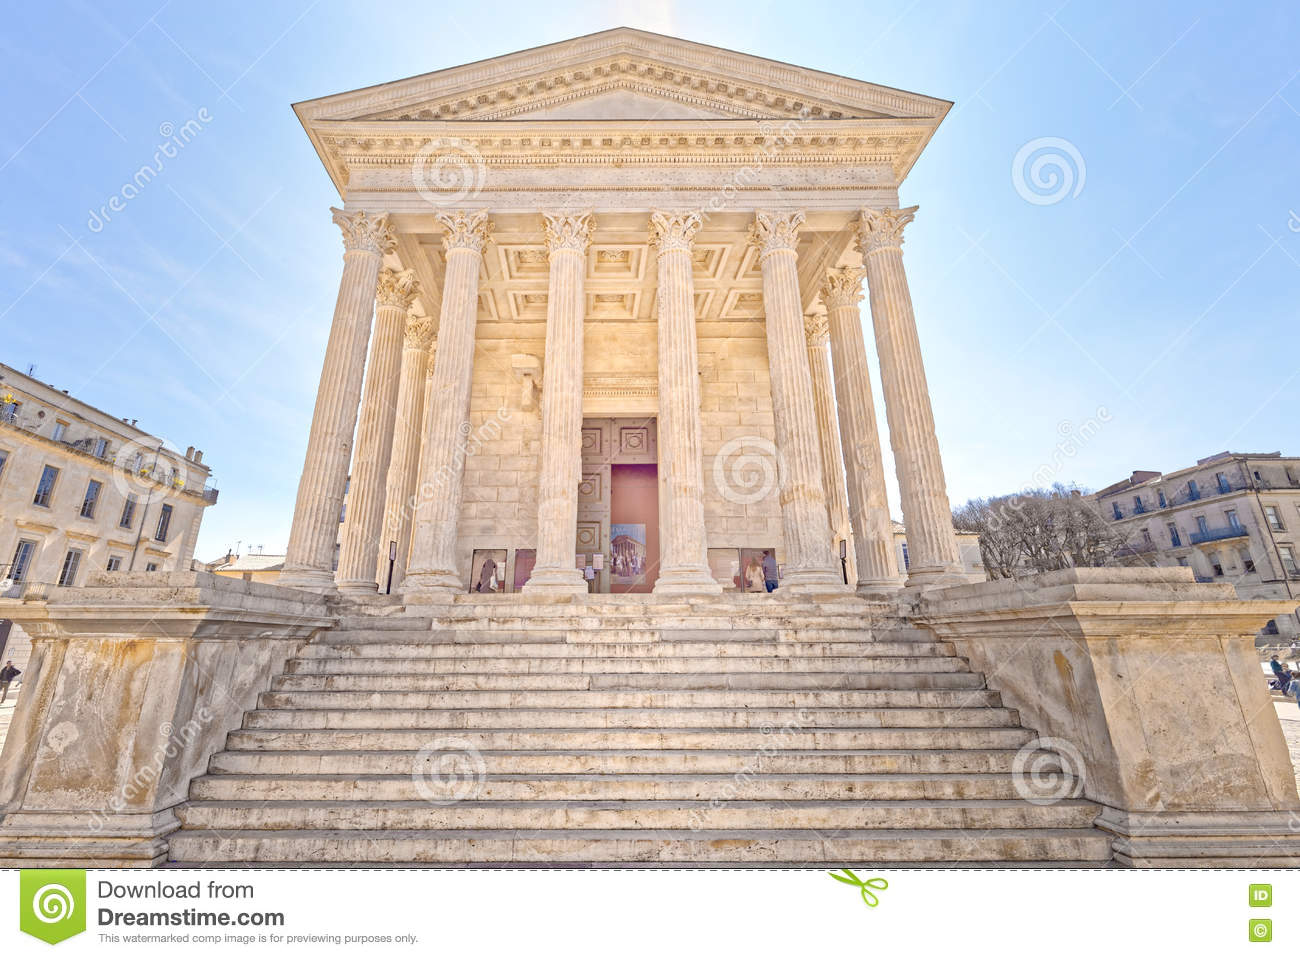 Maison carree nimes france editorial stock image image - Maison carree nimes ...